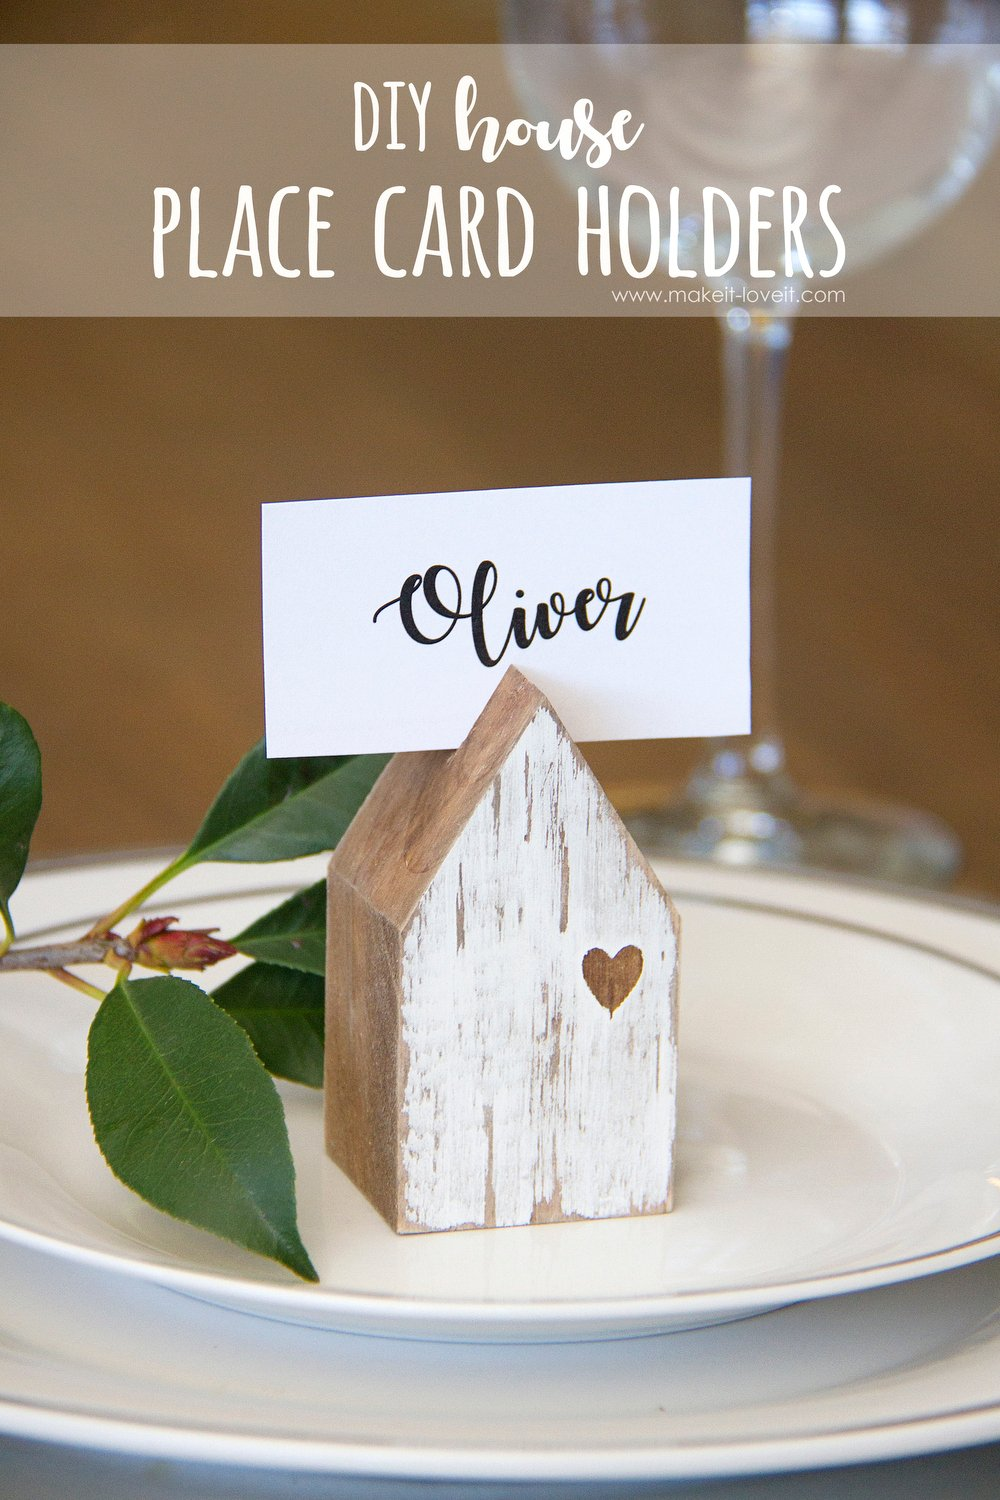 but i didnu0027t want ones that were specific to one thatu0027s why my husband and i created these super cheap house place card holders